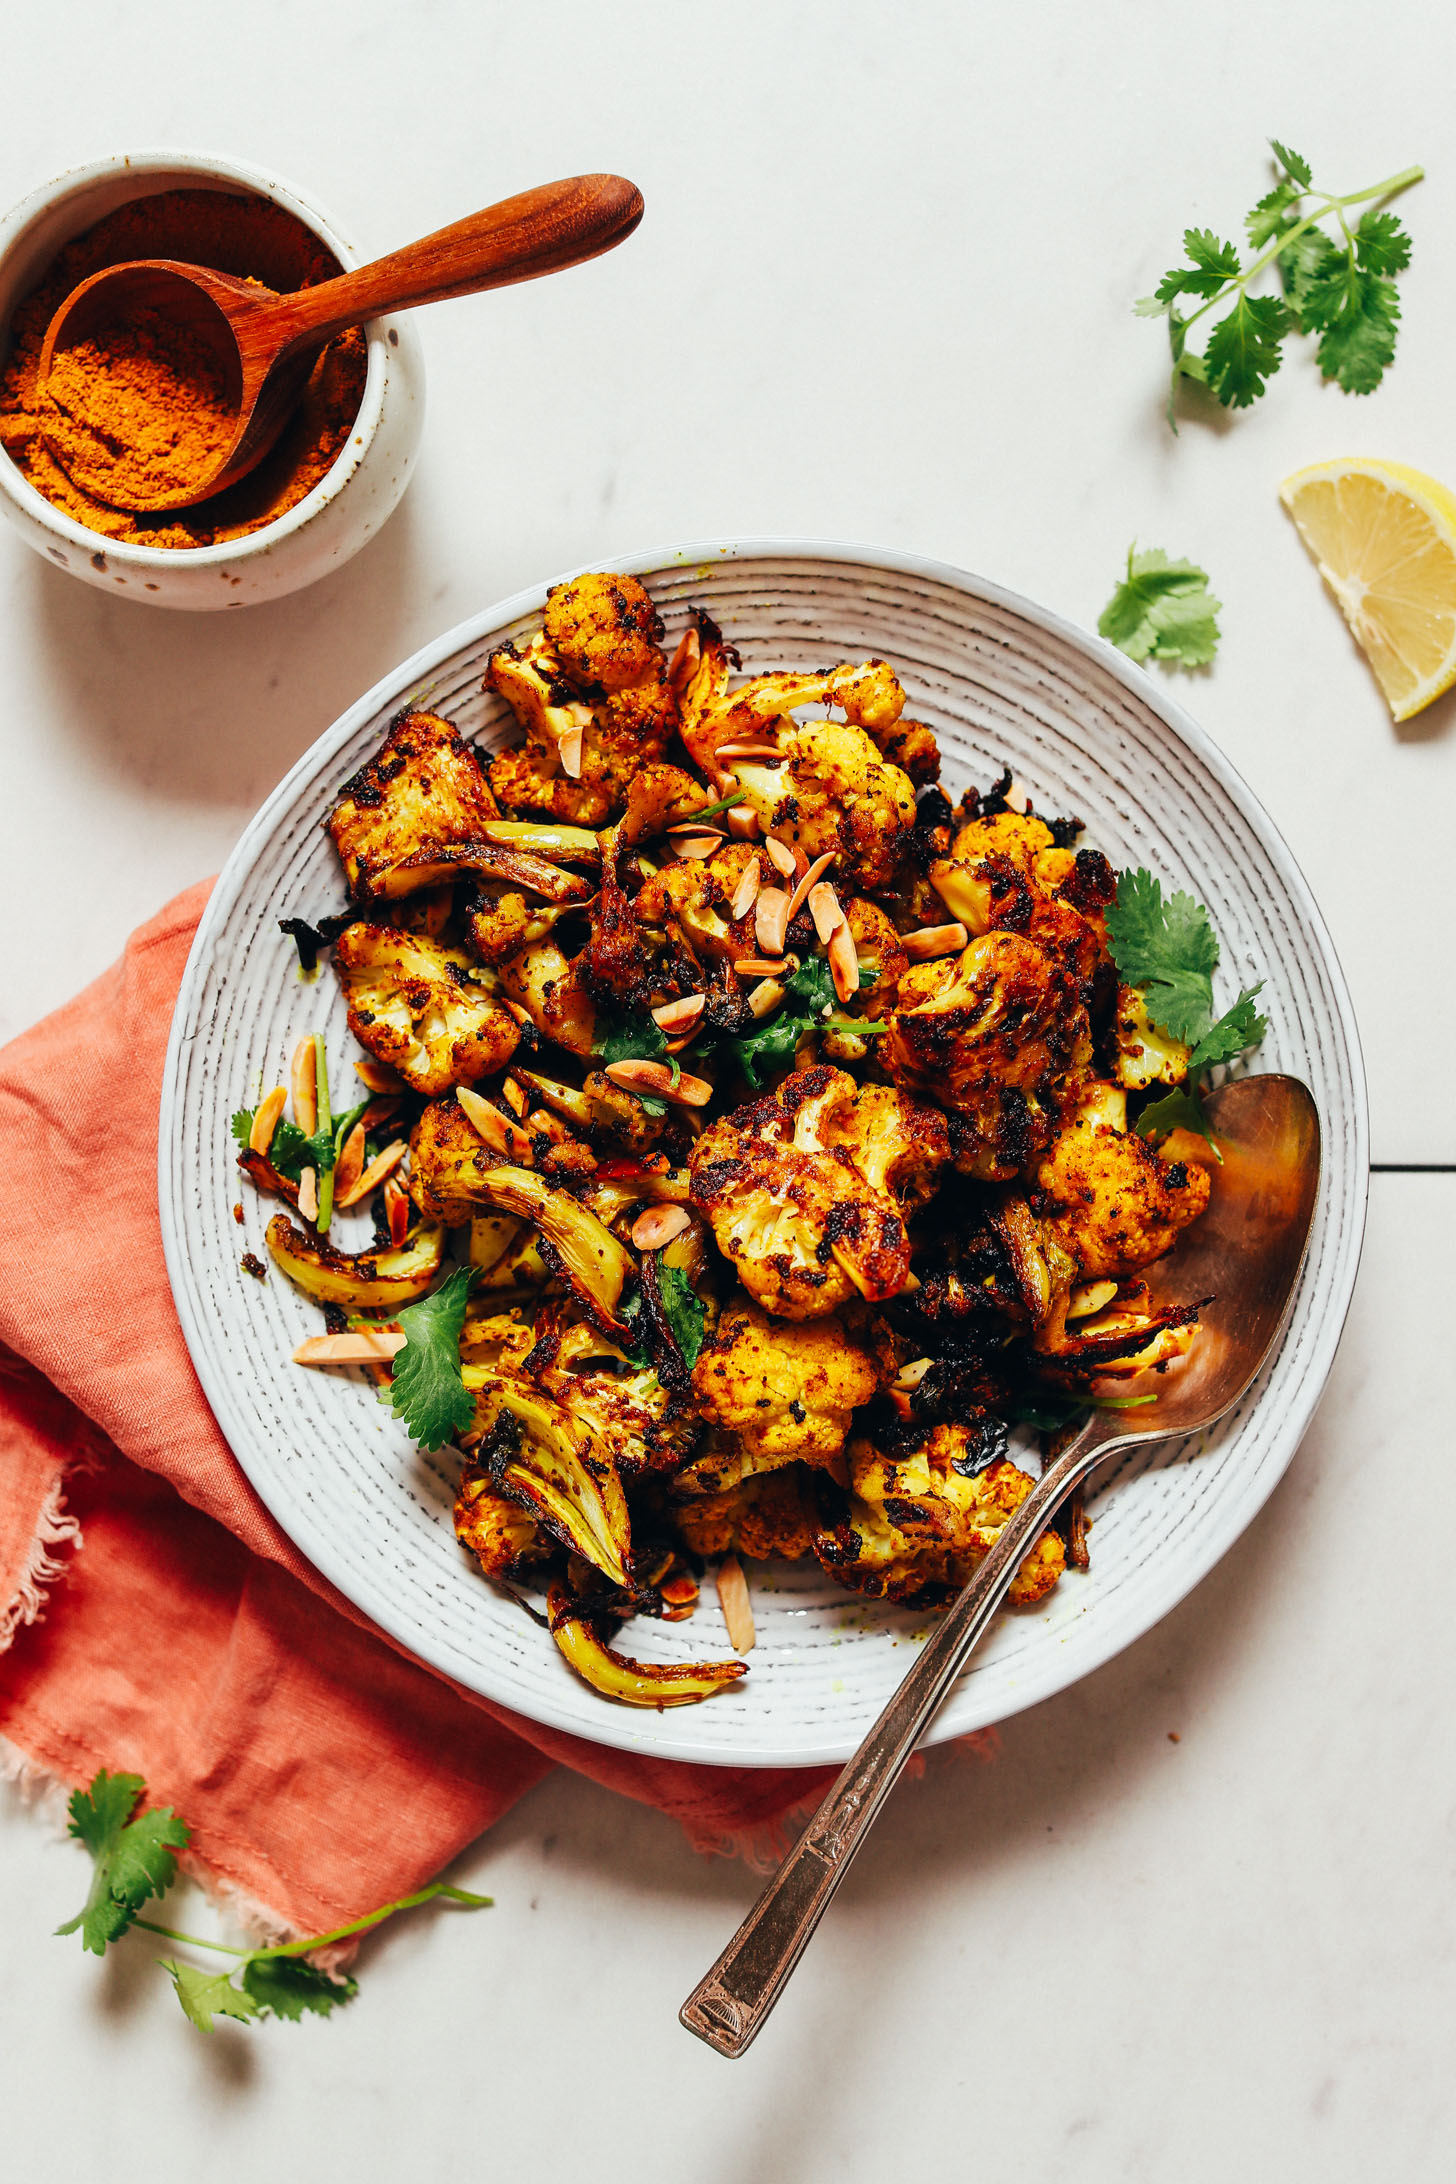 Bowl of Quick Crispy Cauliflower topped with toasted almonds and fresh cilantro beside a dish of curry powder